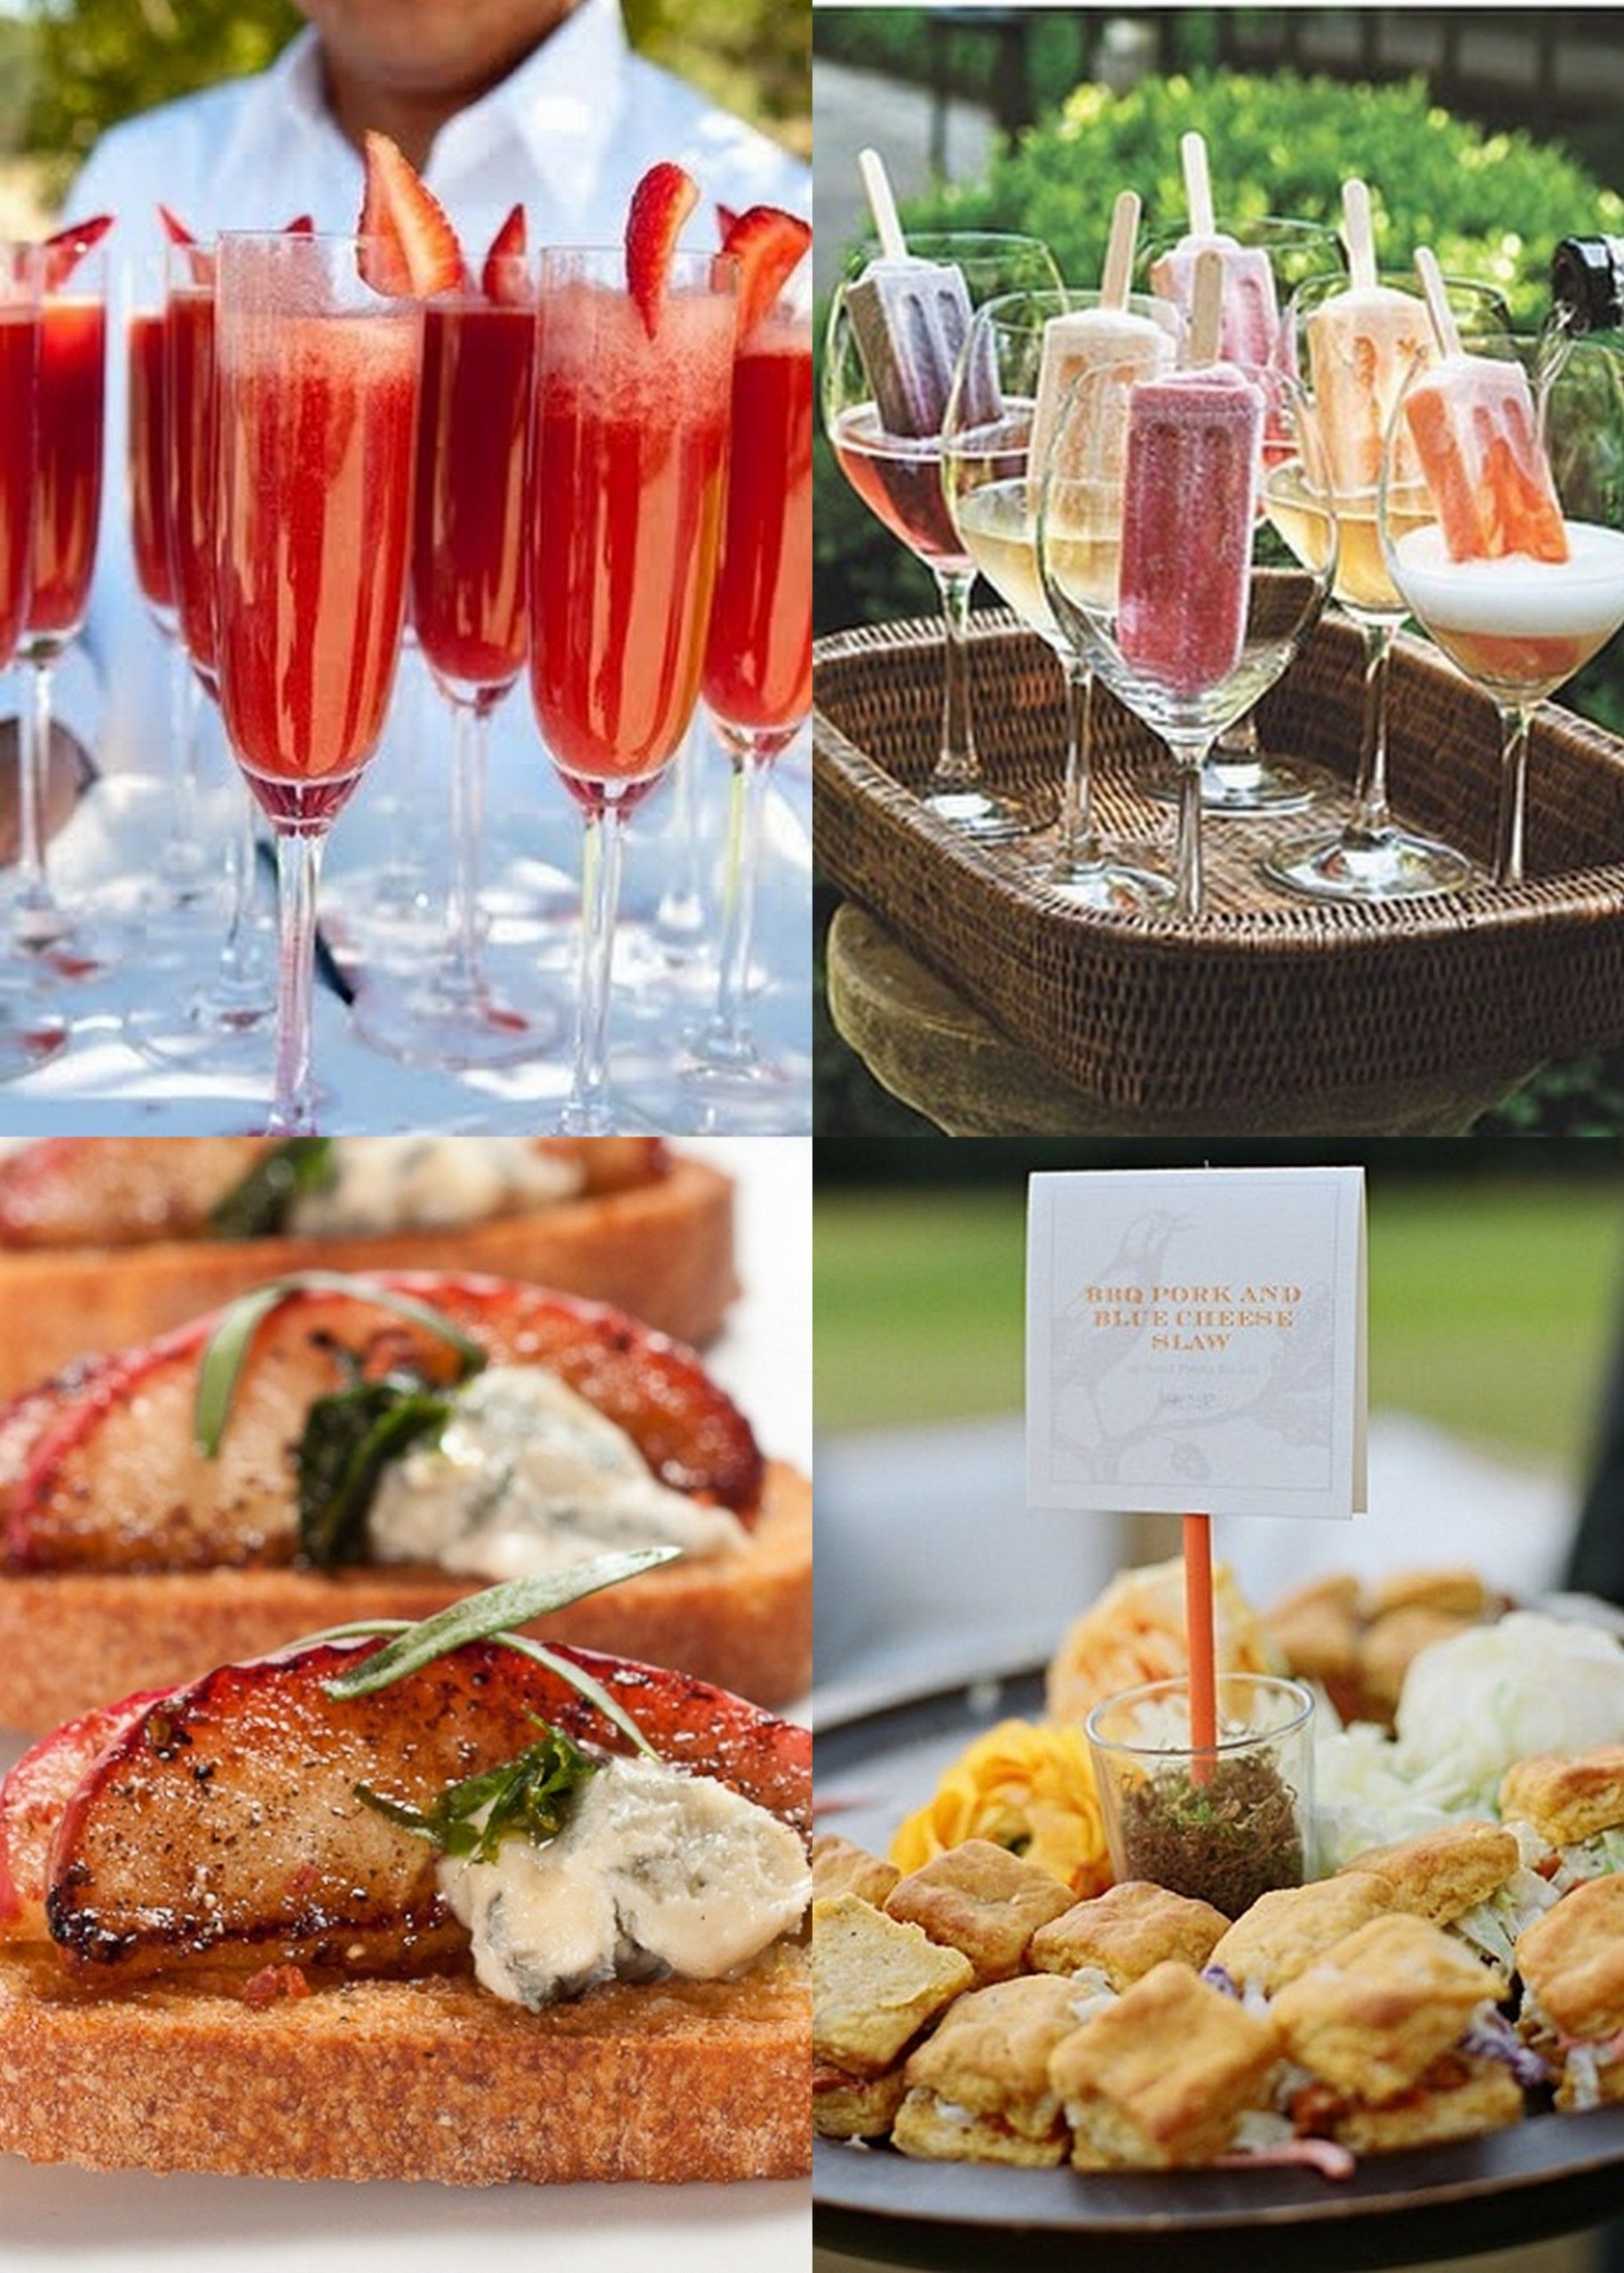 Images Of After Wedding Brunch Photo Credits To Lauri Earons For Sstrawberry Bellini Mama S Style